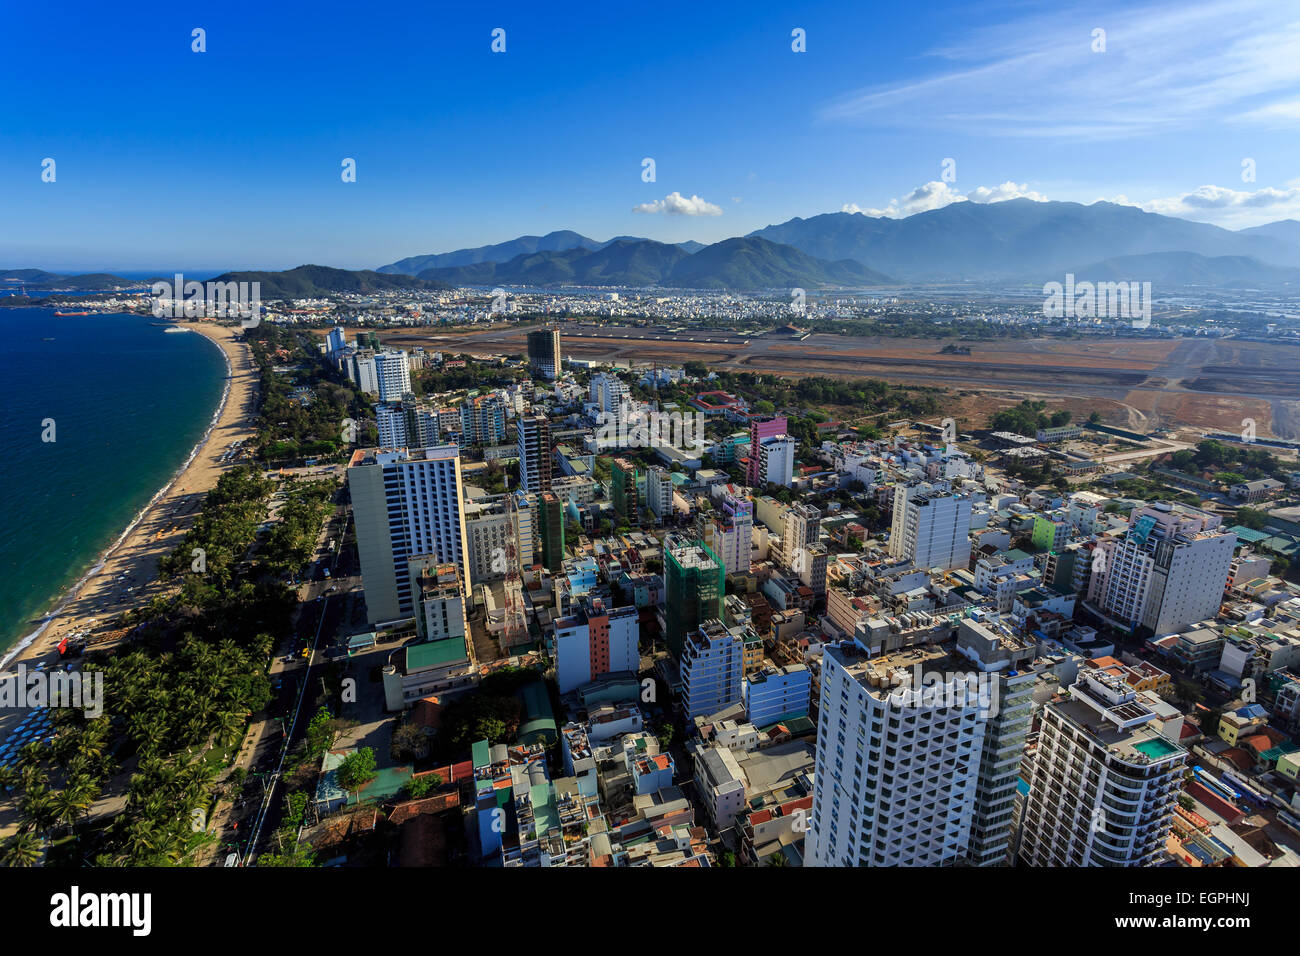 Aerial view over Nha Trang city, Vietnam taken from rooftop, extreme wide angle - Stock Image